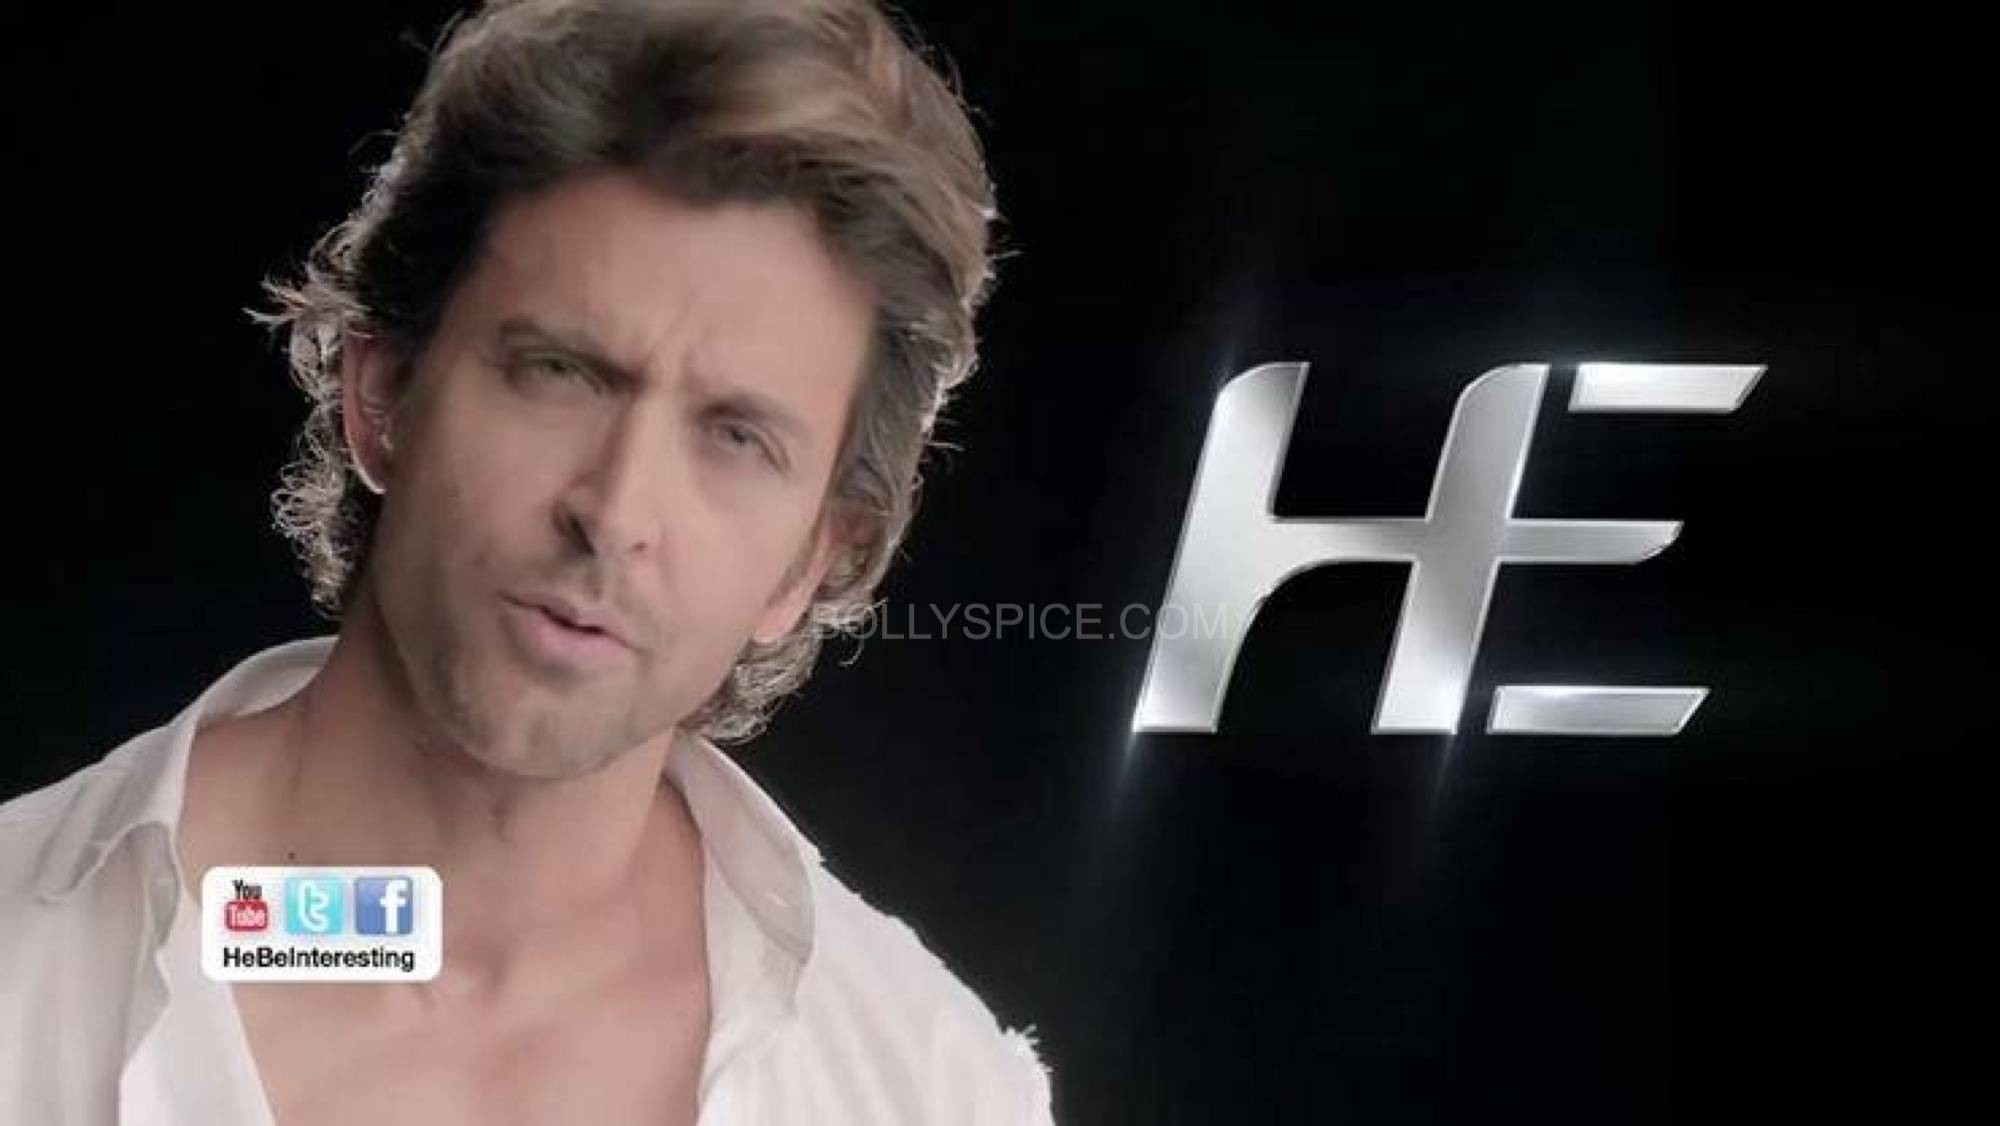 hrithikHE2 Hrithik turns Brand ambassador for He Deo